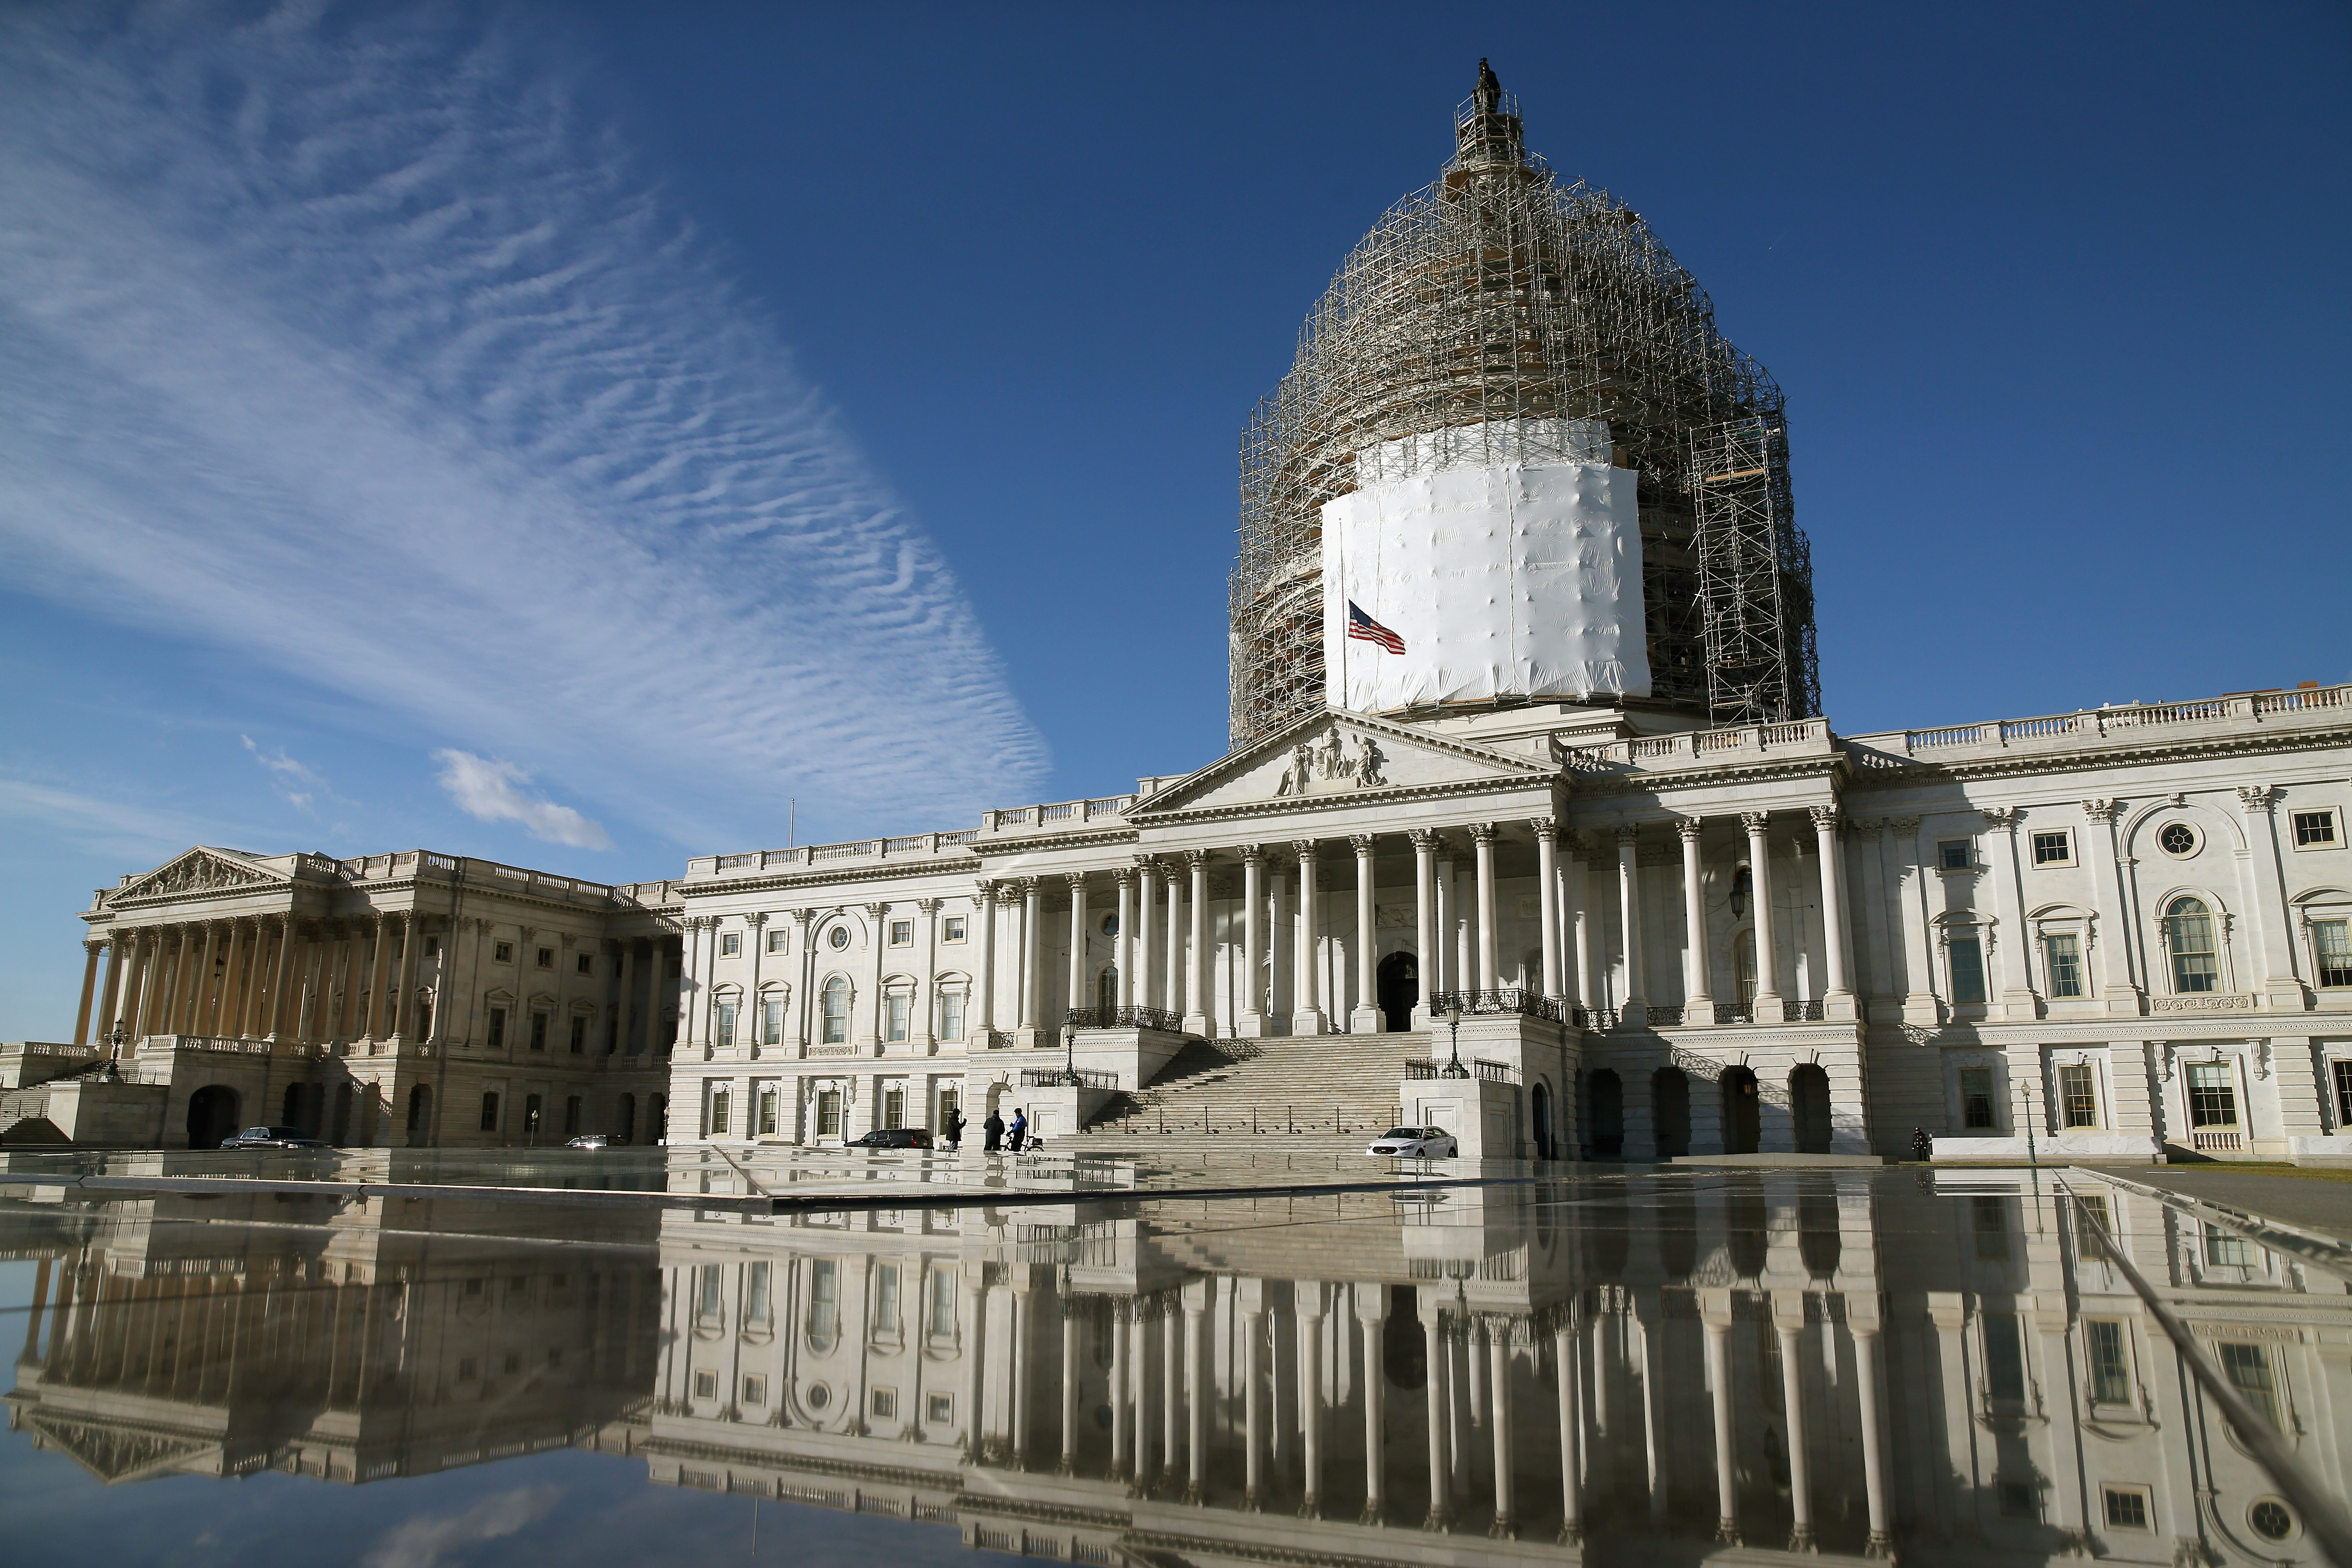 The US Capitol is reflected in a fountain, January 5, 2015 in Washington, DC. Congress is set to tackle Medicare issues, the Iran nuclear deal, and Loretta Lynch. Photo by Mark Wilson/Getty Images.